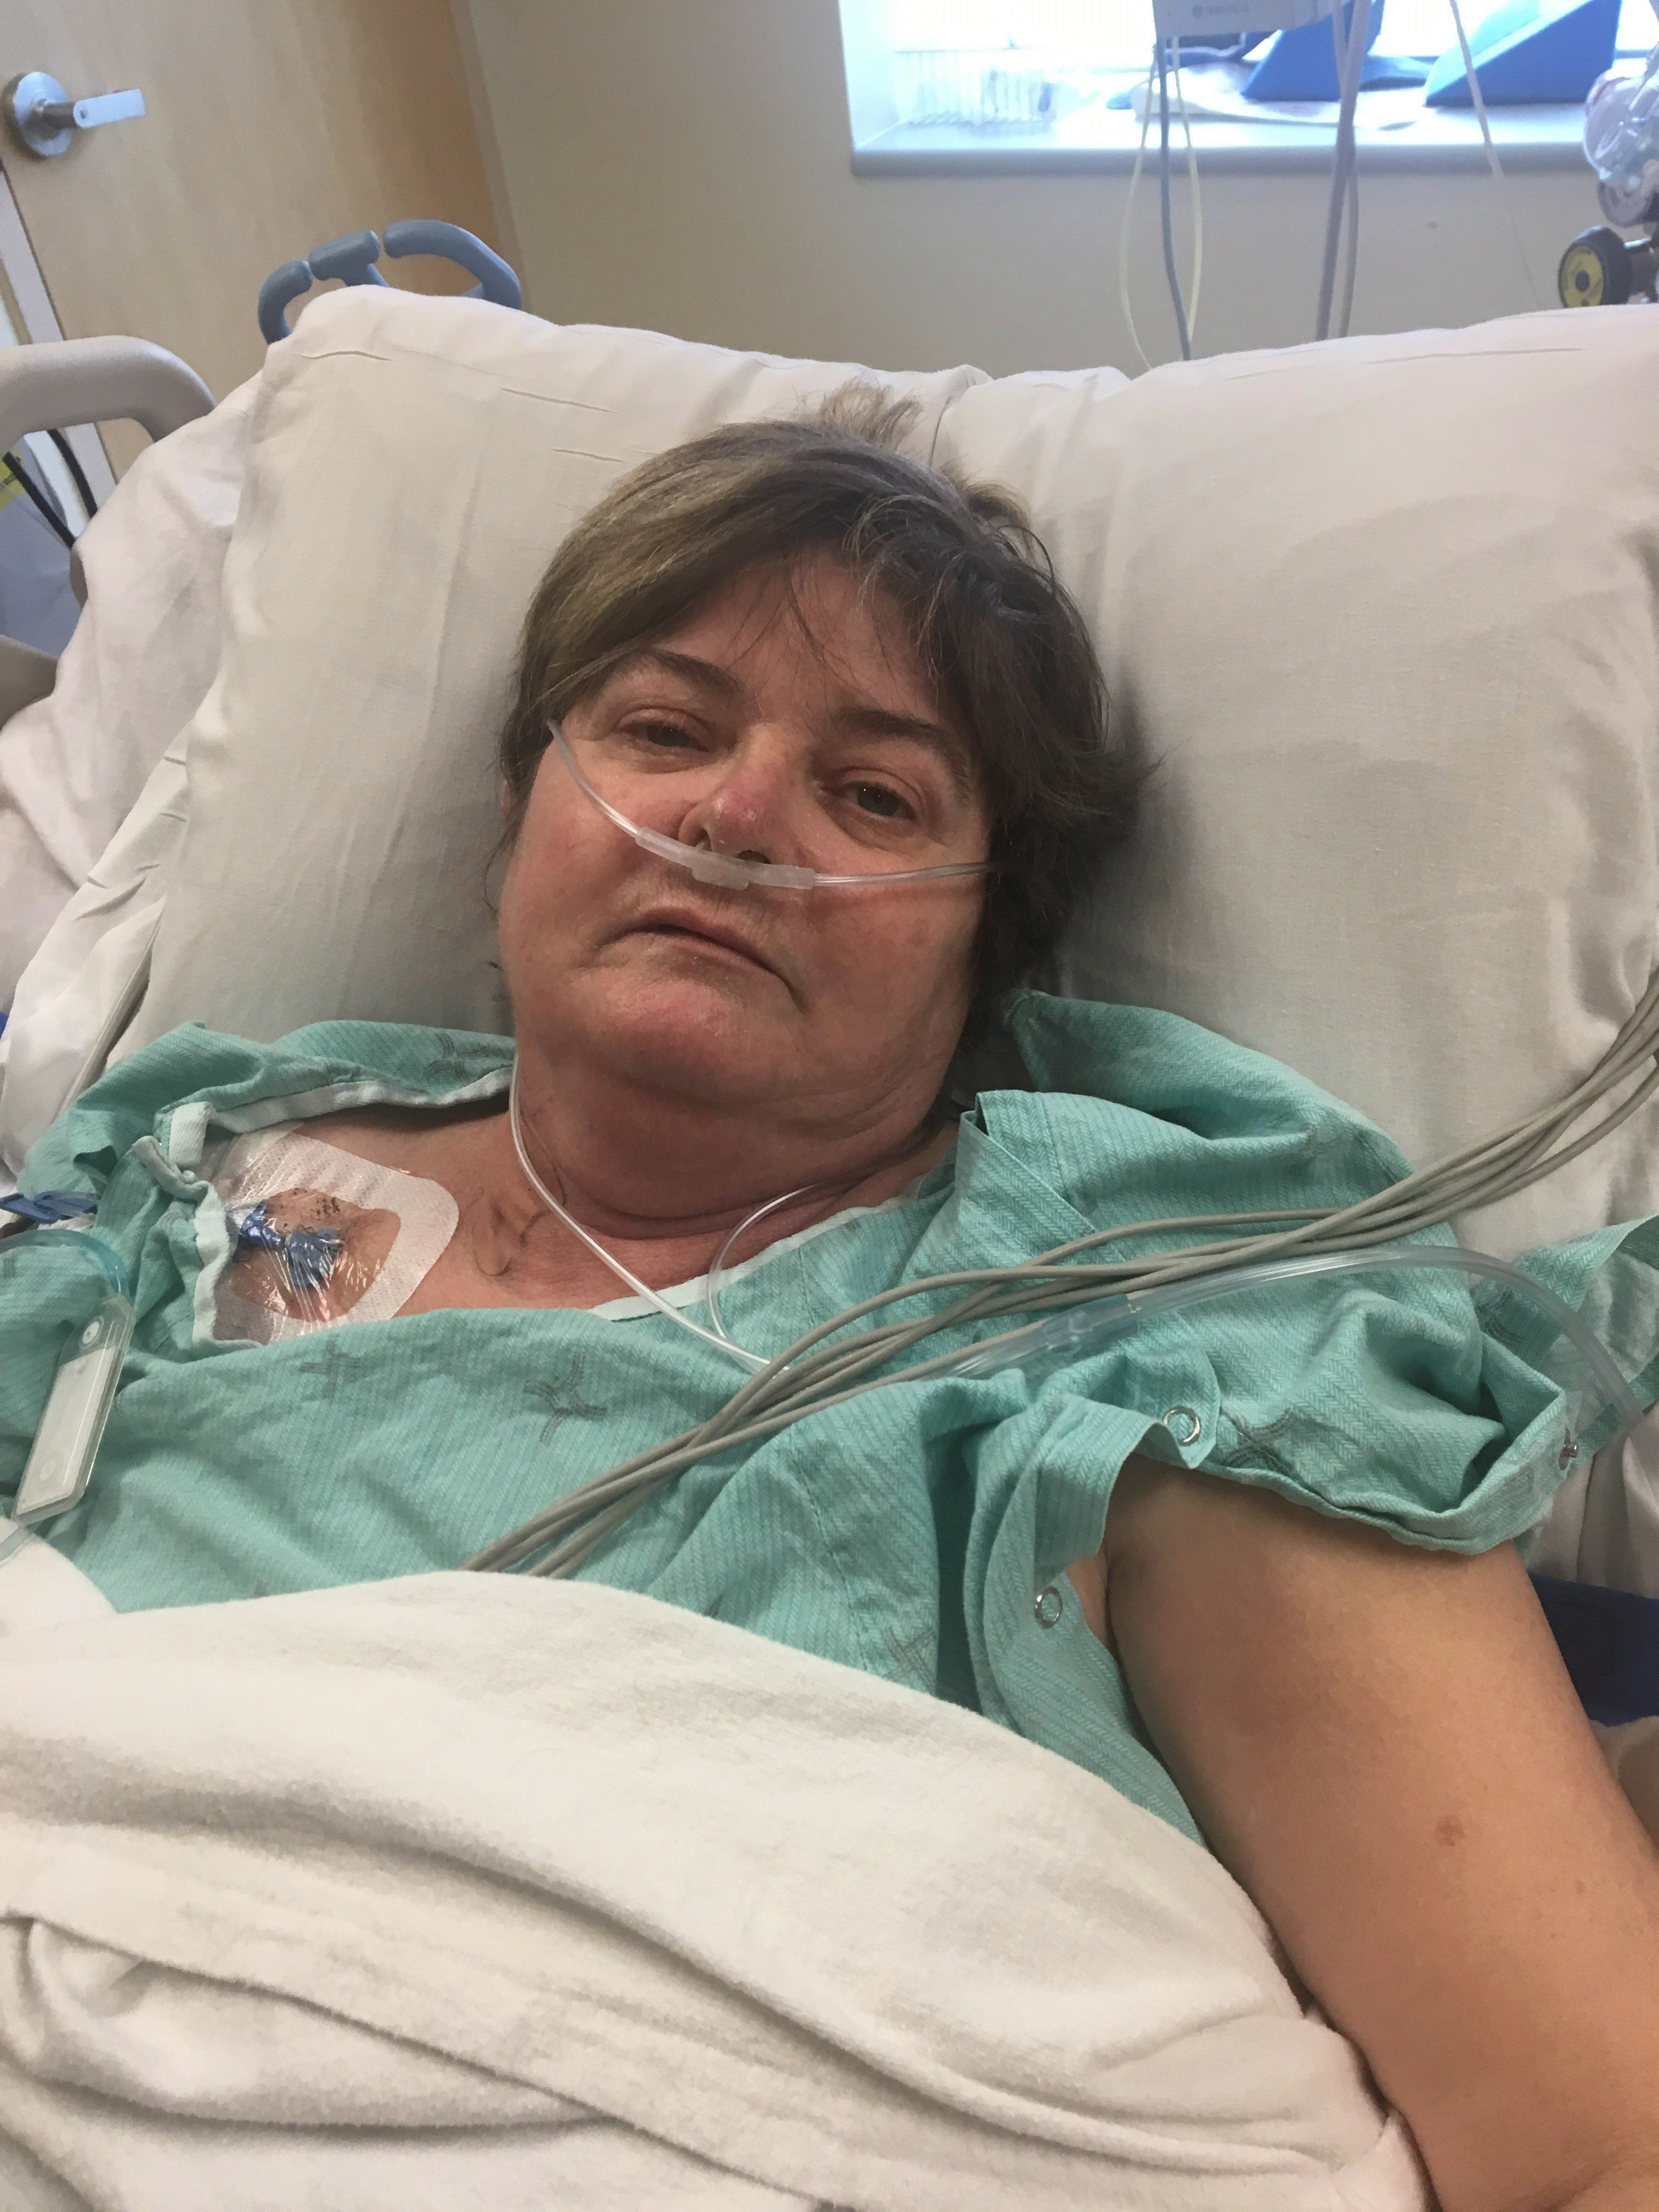 Lung transplant patient Eva Runciman, 52, of St. Thomas, Ont. is seen in an undated handout photo. THE CANADIAN PRESS/HO/Eva Runciman